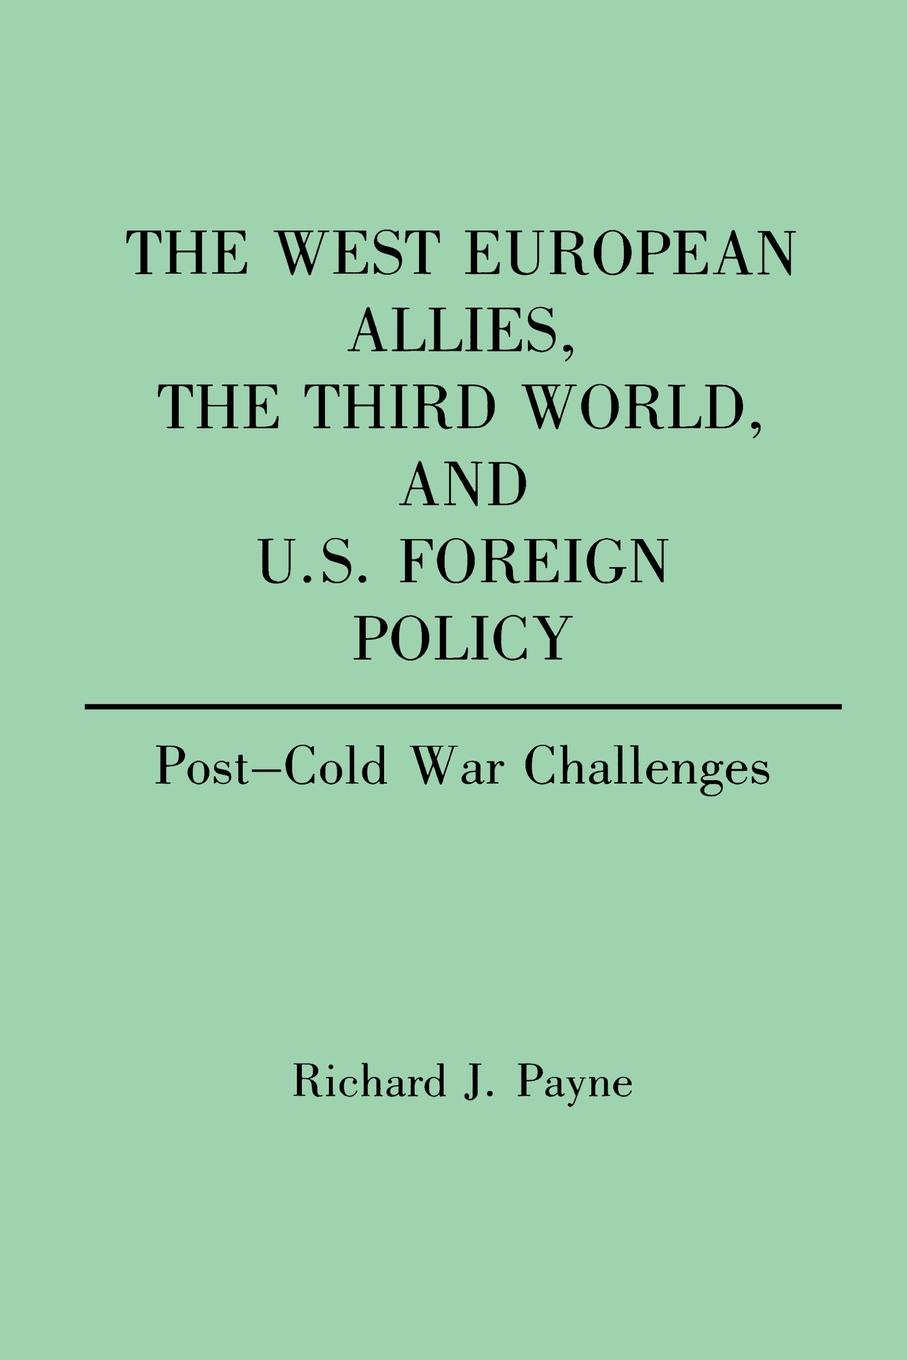 Richard J. Payne The West European Allies, the Third World, and U.S. Foreign Policy. Post-Cold War Challenges strategic studies institute samuel s investigation north korean foreign relations in the post cold war world